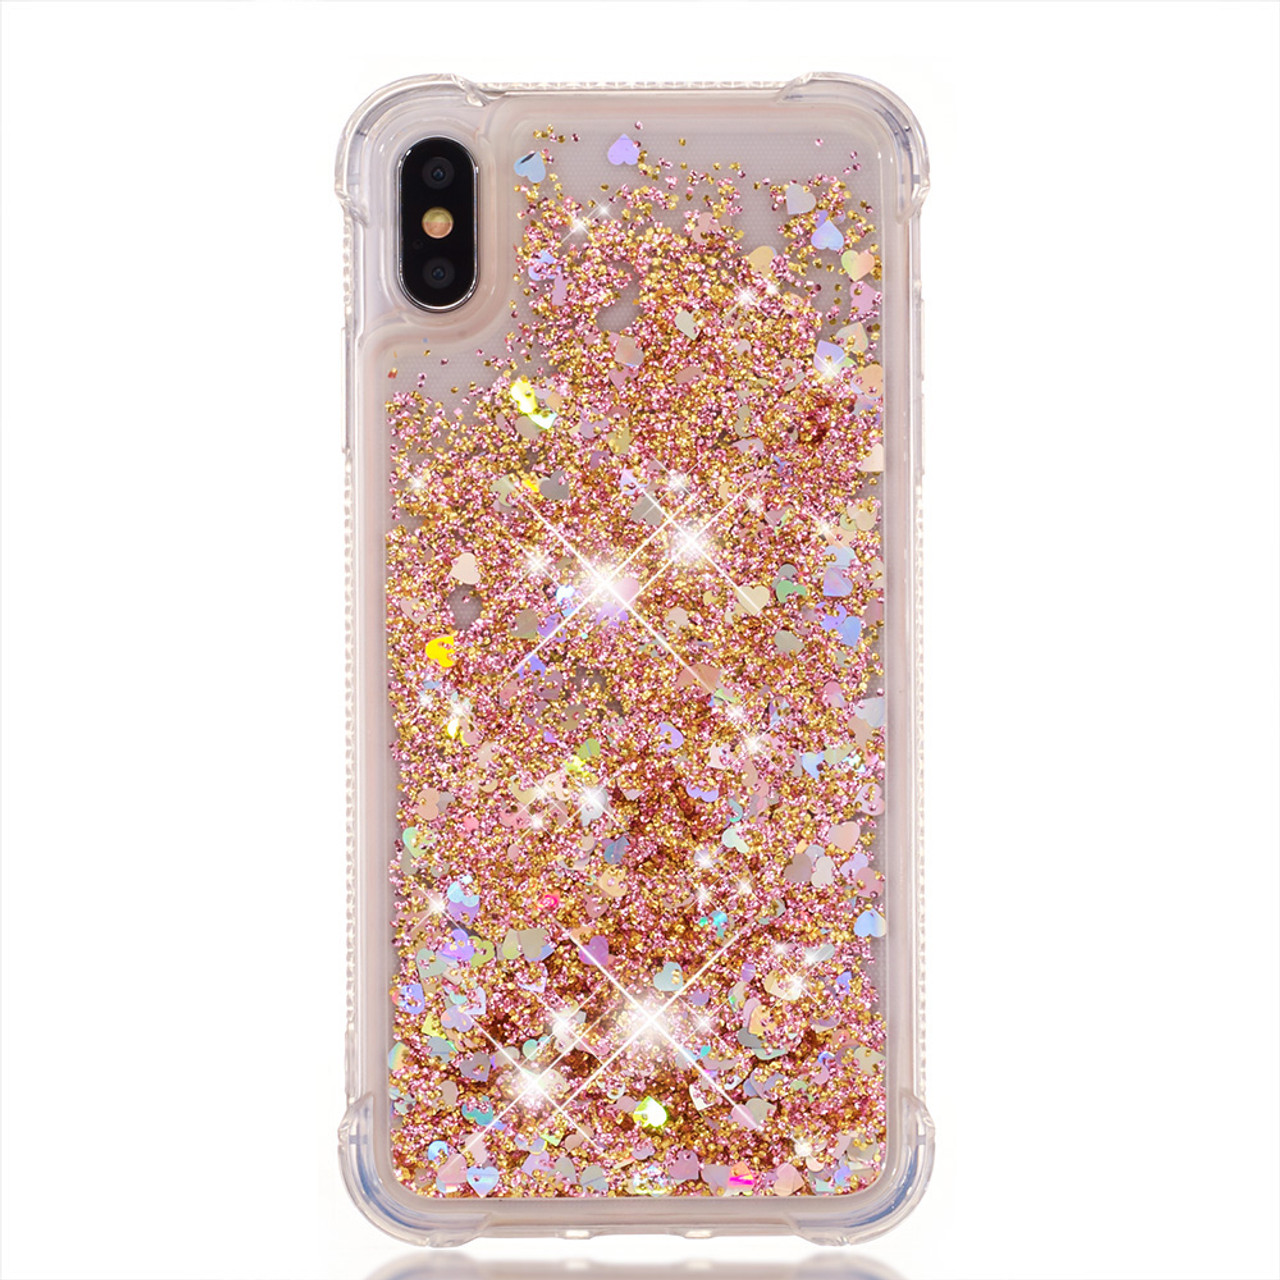 Dir-Maos For iPhone Xs Max Soft Case Xr X 8 Plus 7 Plus 6 6s Water ... dd76ccf63e